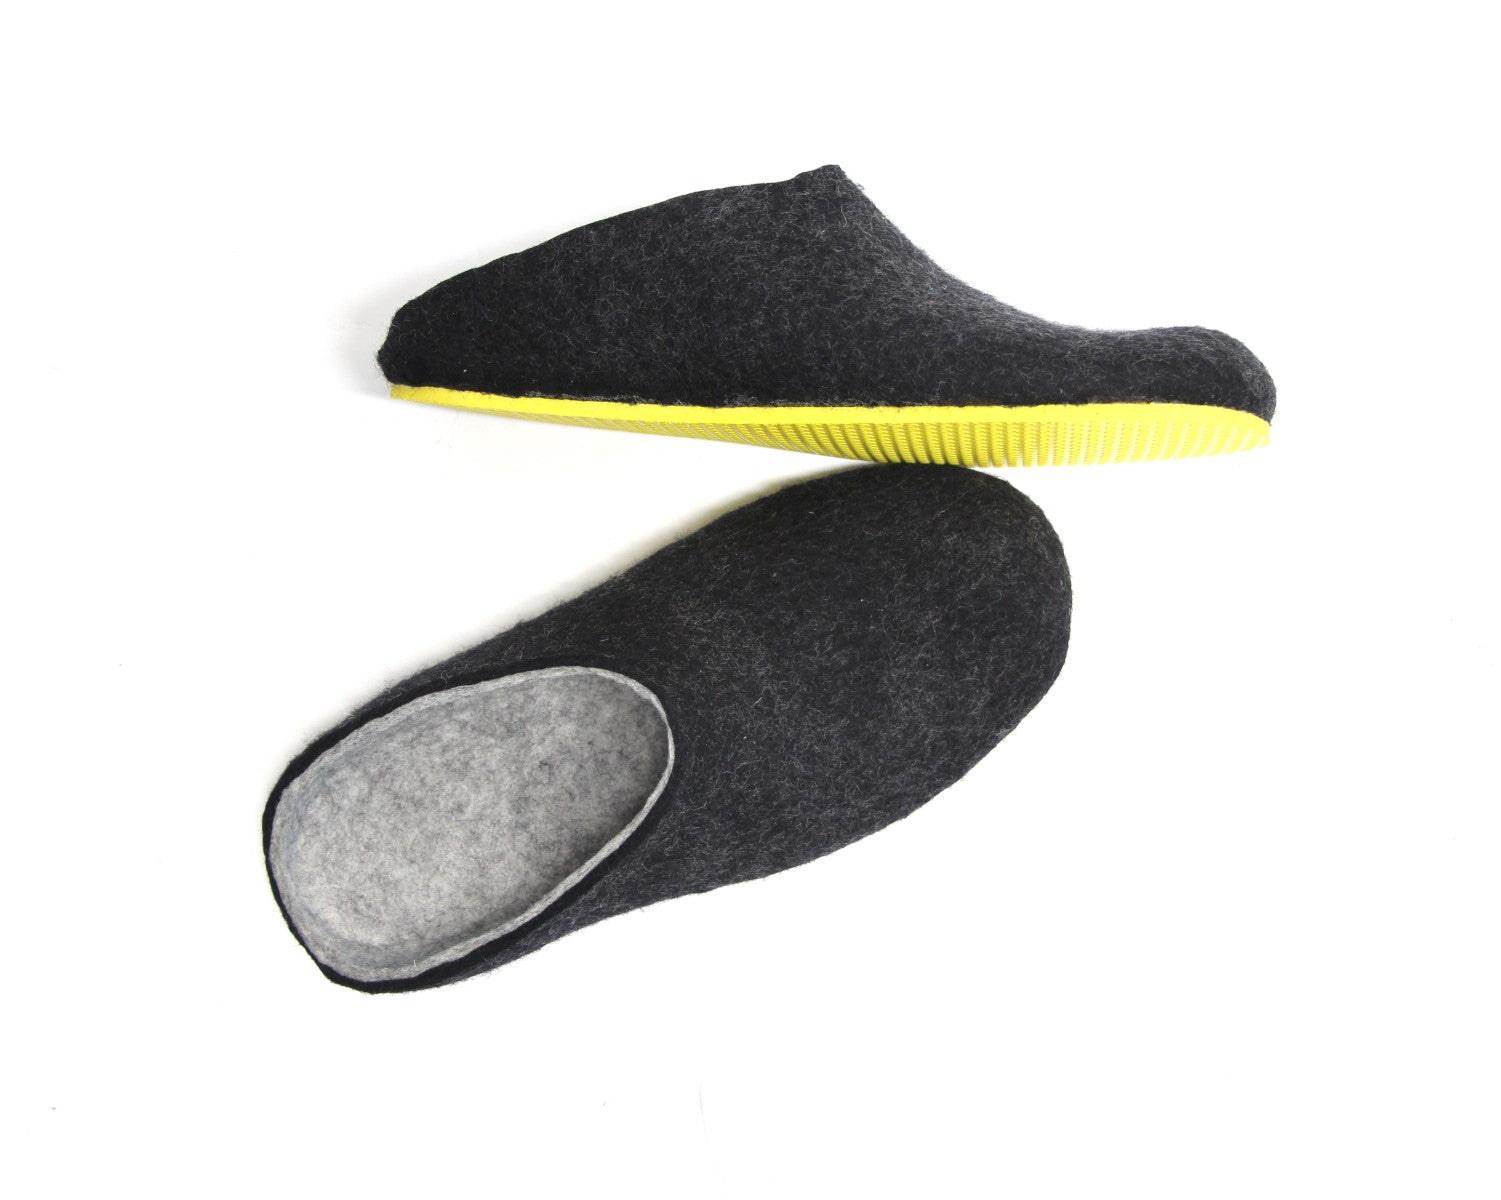 Mens Felt Clogs Charcoal Contrast Sole - Wool Walker  - 3